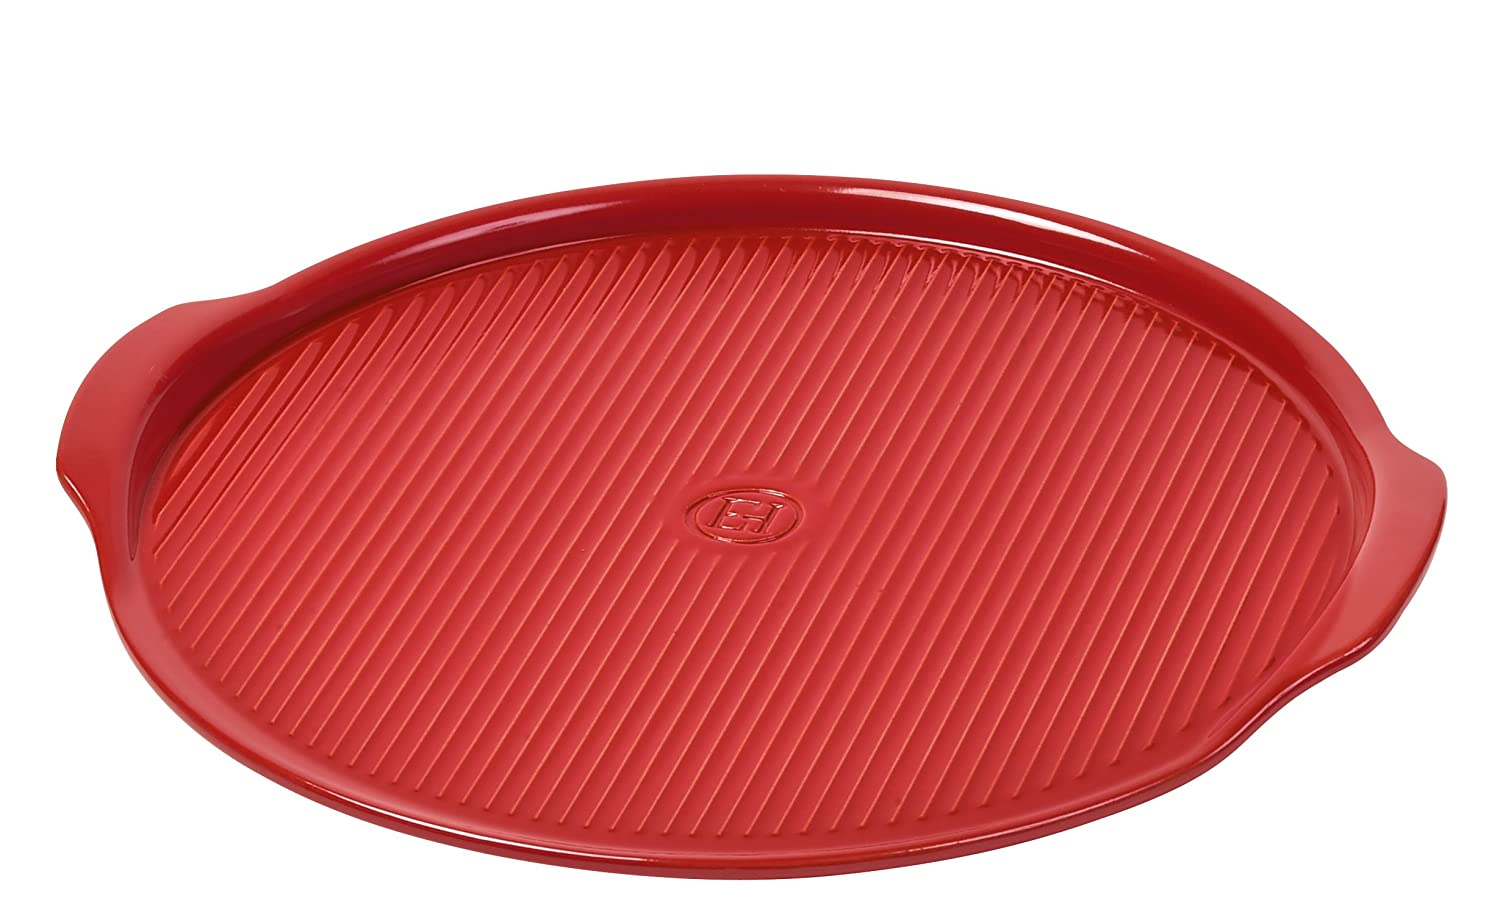 "Emile Henry Made In France Flame Pizza Stone, 14.6 x 14.6"", Burgundy"